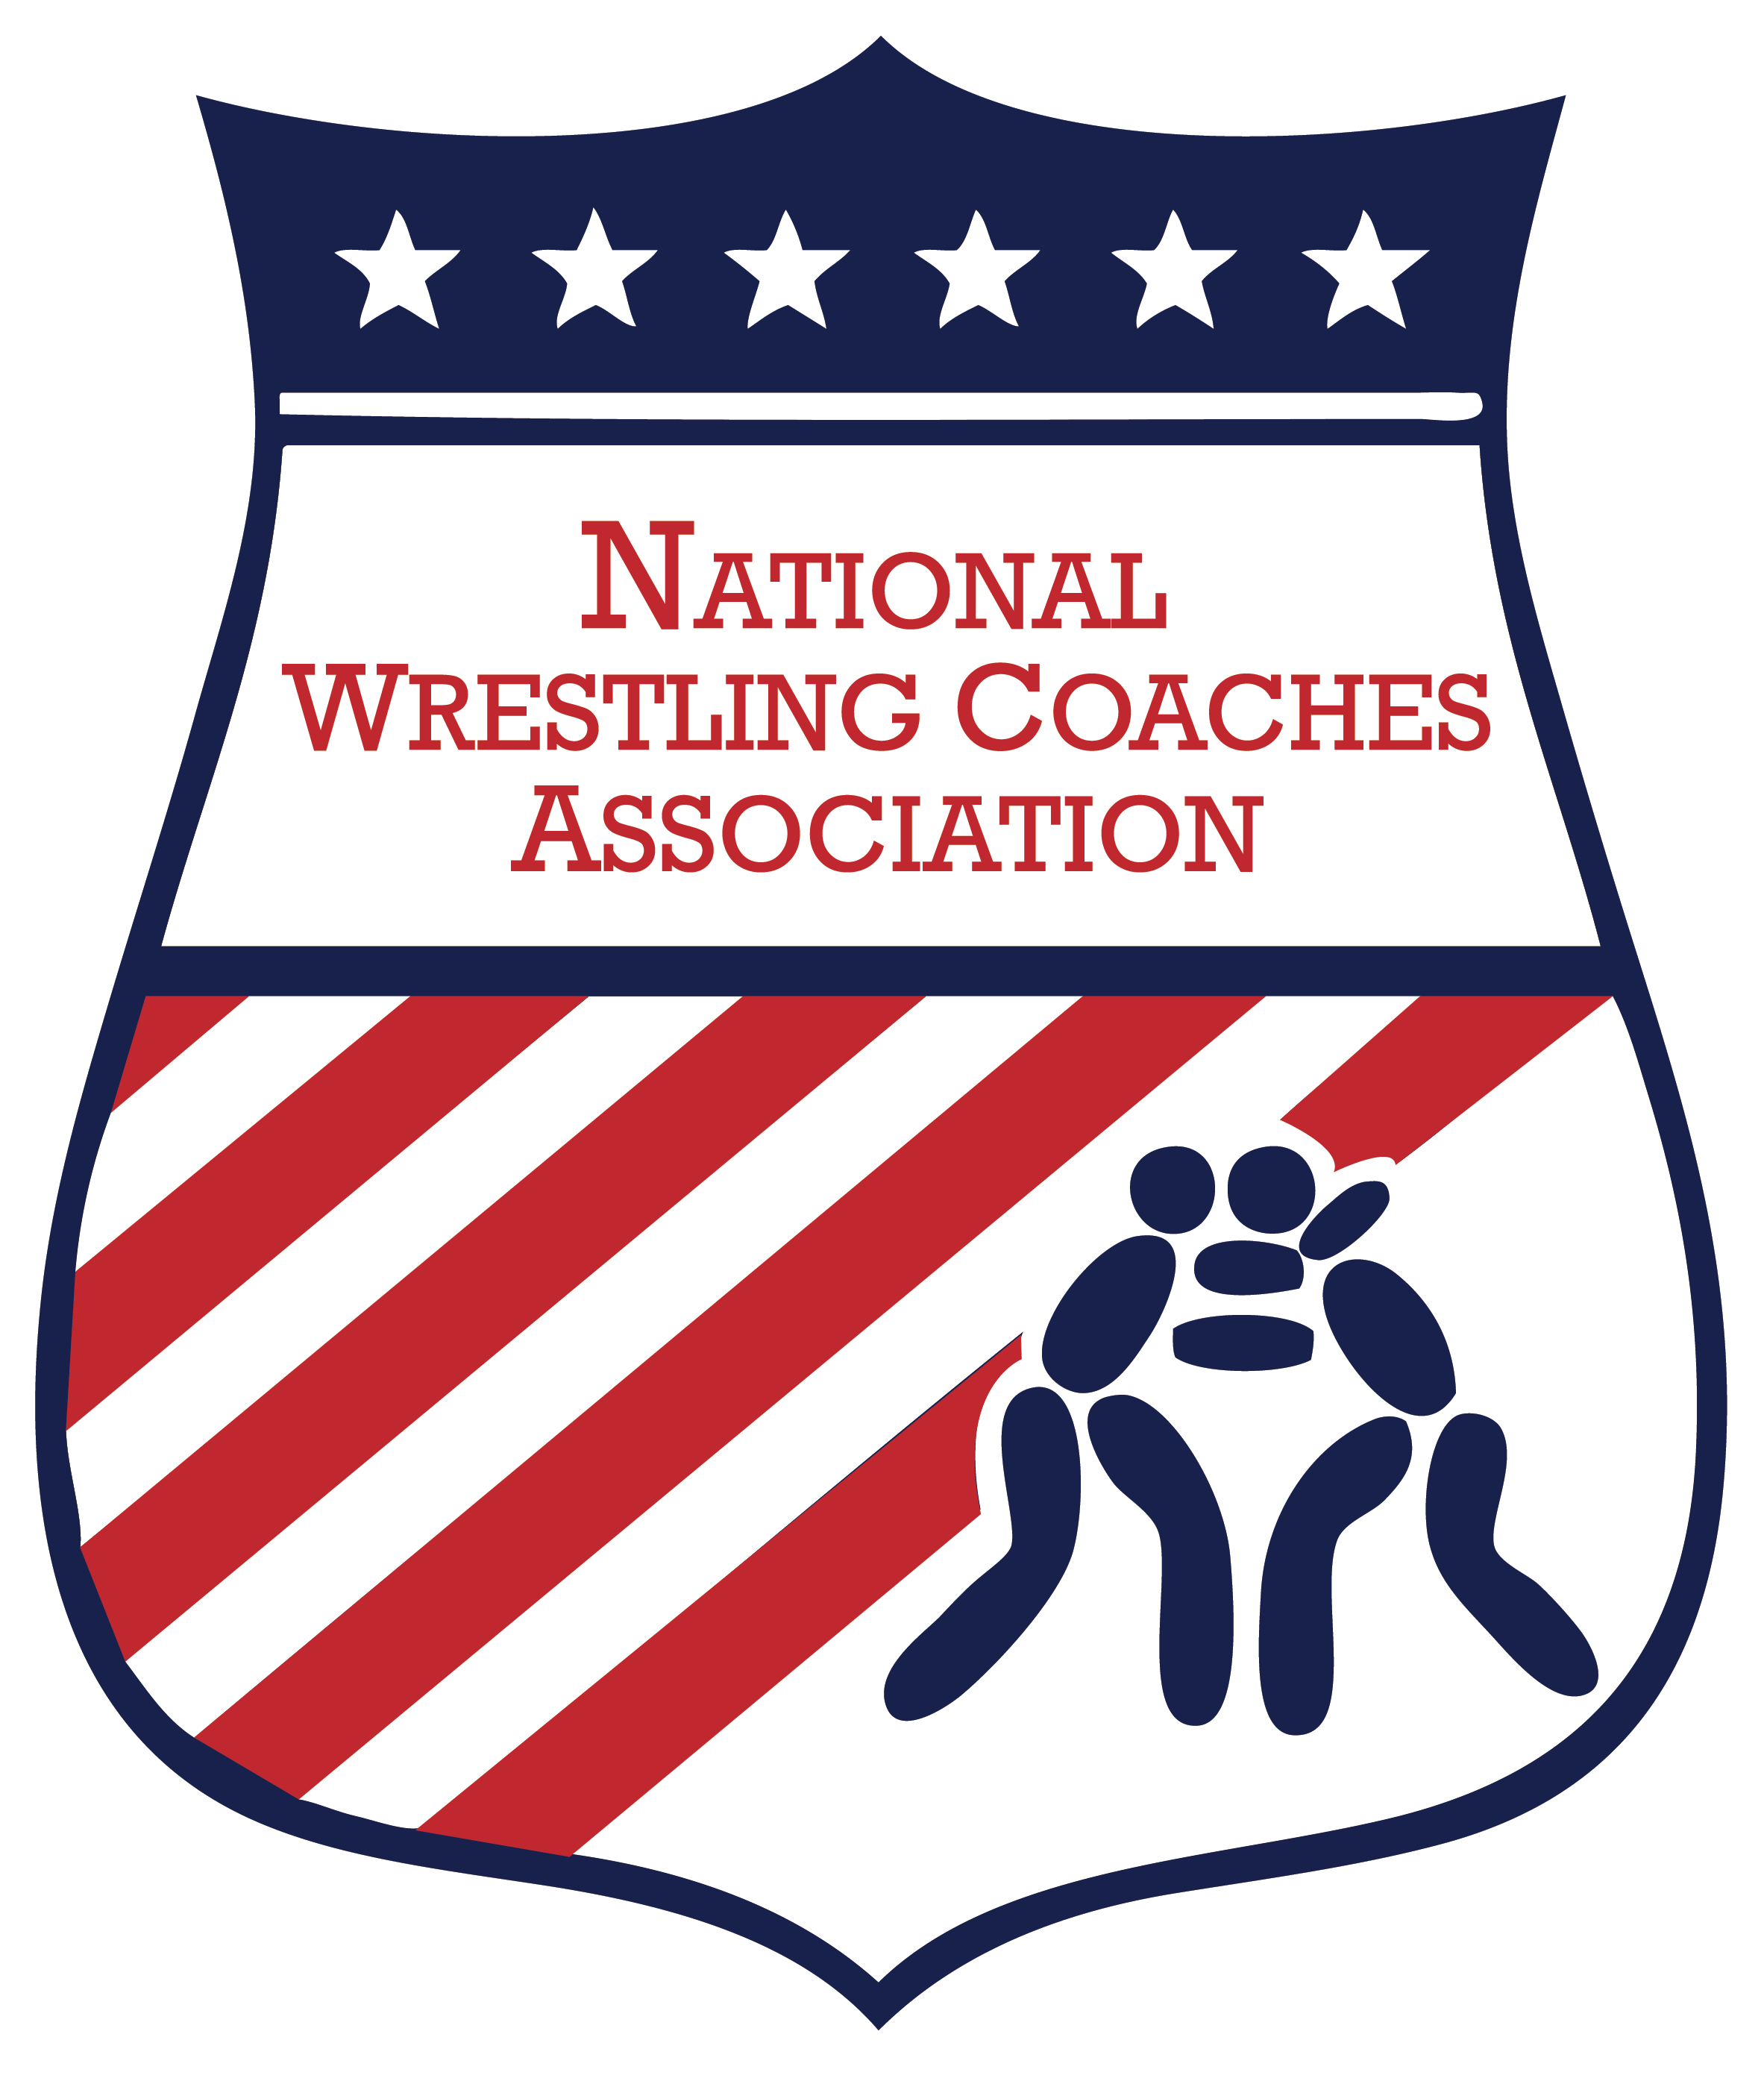 nWCA ON THE NEXT STEPS FOR RECOMMENDED NCAA ESS - The NWCA includes the next steps in moving the recommendation of the NCAA Committee on Women's Athletics to make Wrestling an official emerging sport.Having the committee recommend emerging sport status is the first goal in the process. And the administrators are most thankful for all the hard work the affiliates put in to get it to this point.Next comes the behind the scenes lobbying for approval by the member institutions.The attached Press Release indicates the plan the members hope will bring success to the movement so that by August 2020 women's wrestling will be an official emerging sport with the NCAA.